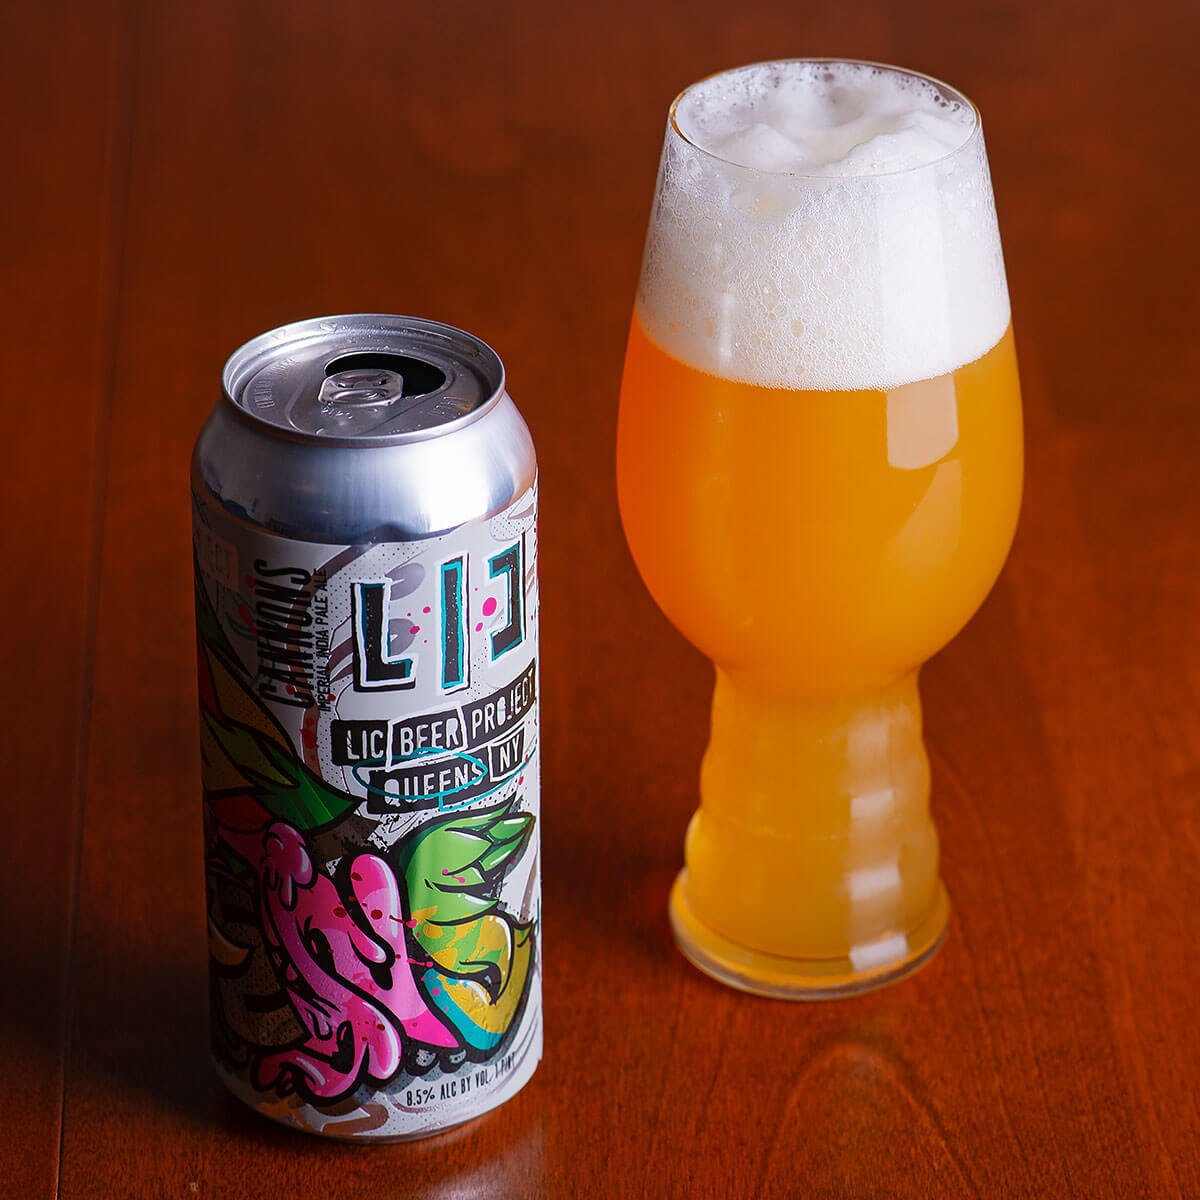 Cannons is a New England-style American Double IPA by LIC Beer Project that blends hoppy citrus and pine with stone fruit and biscuit.